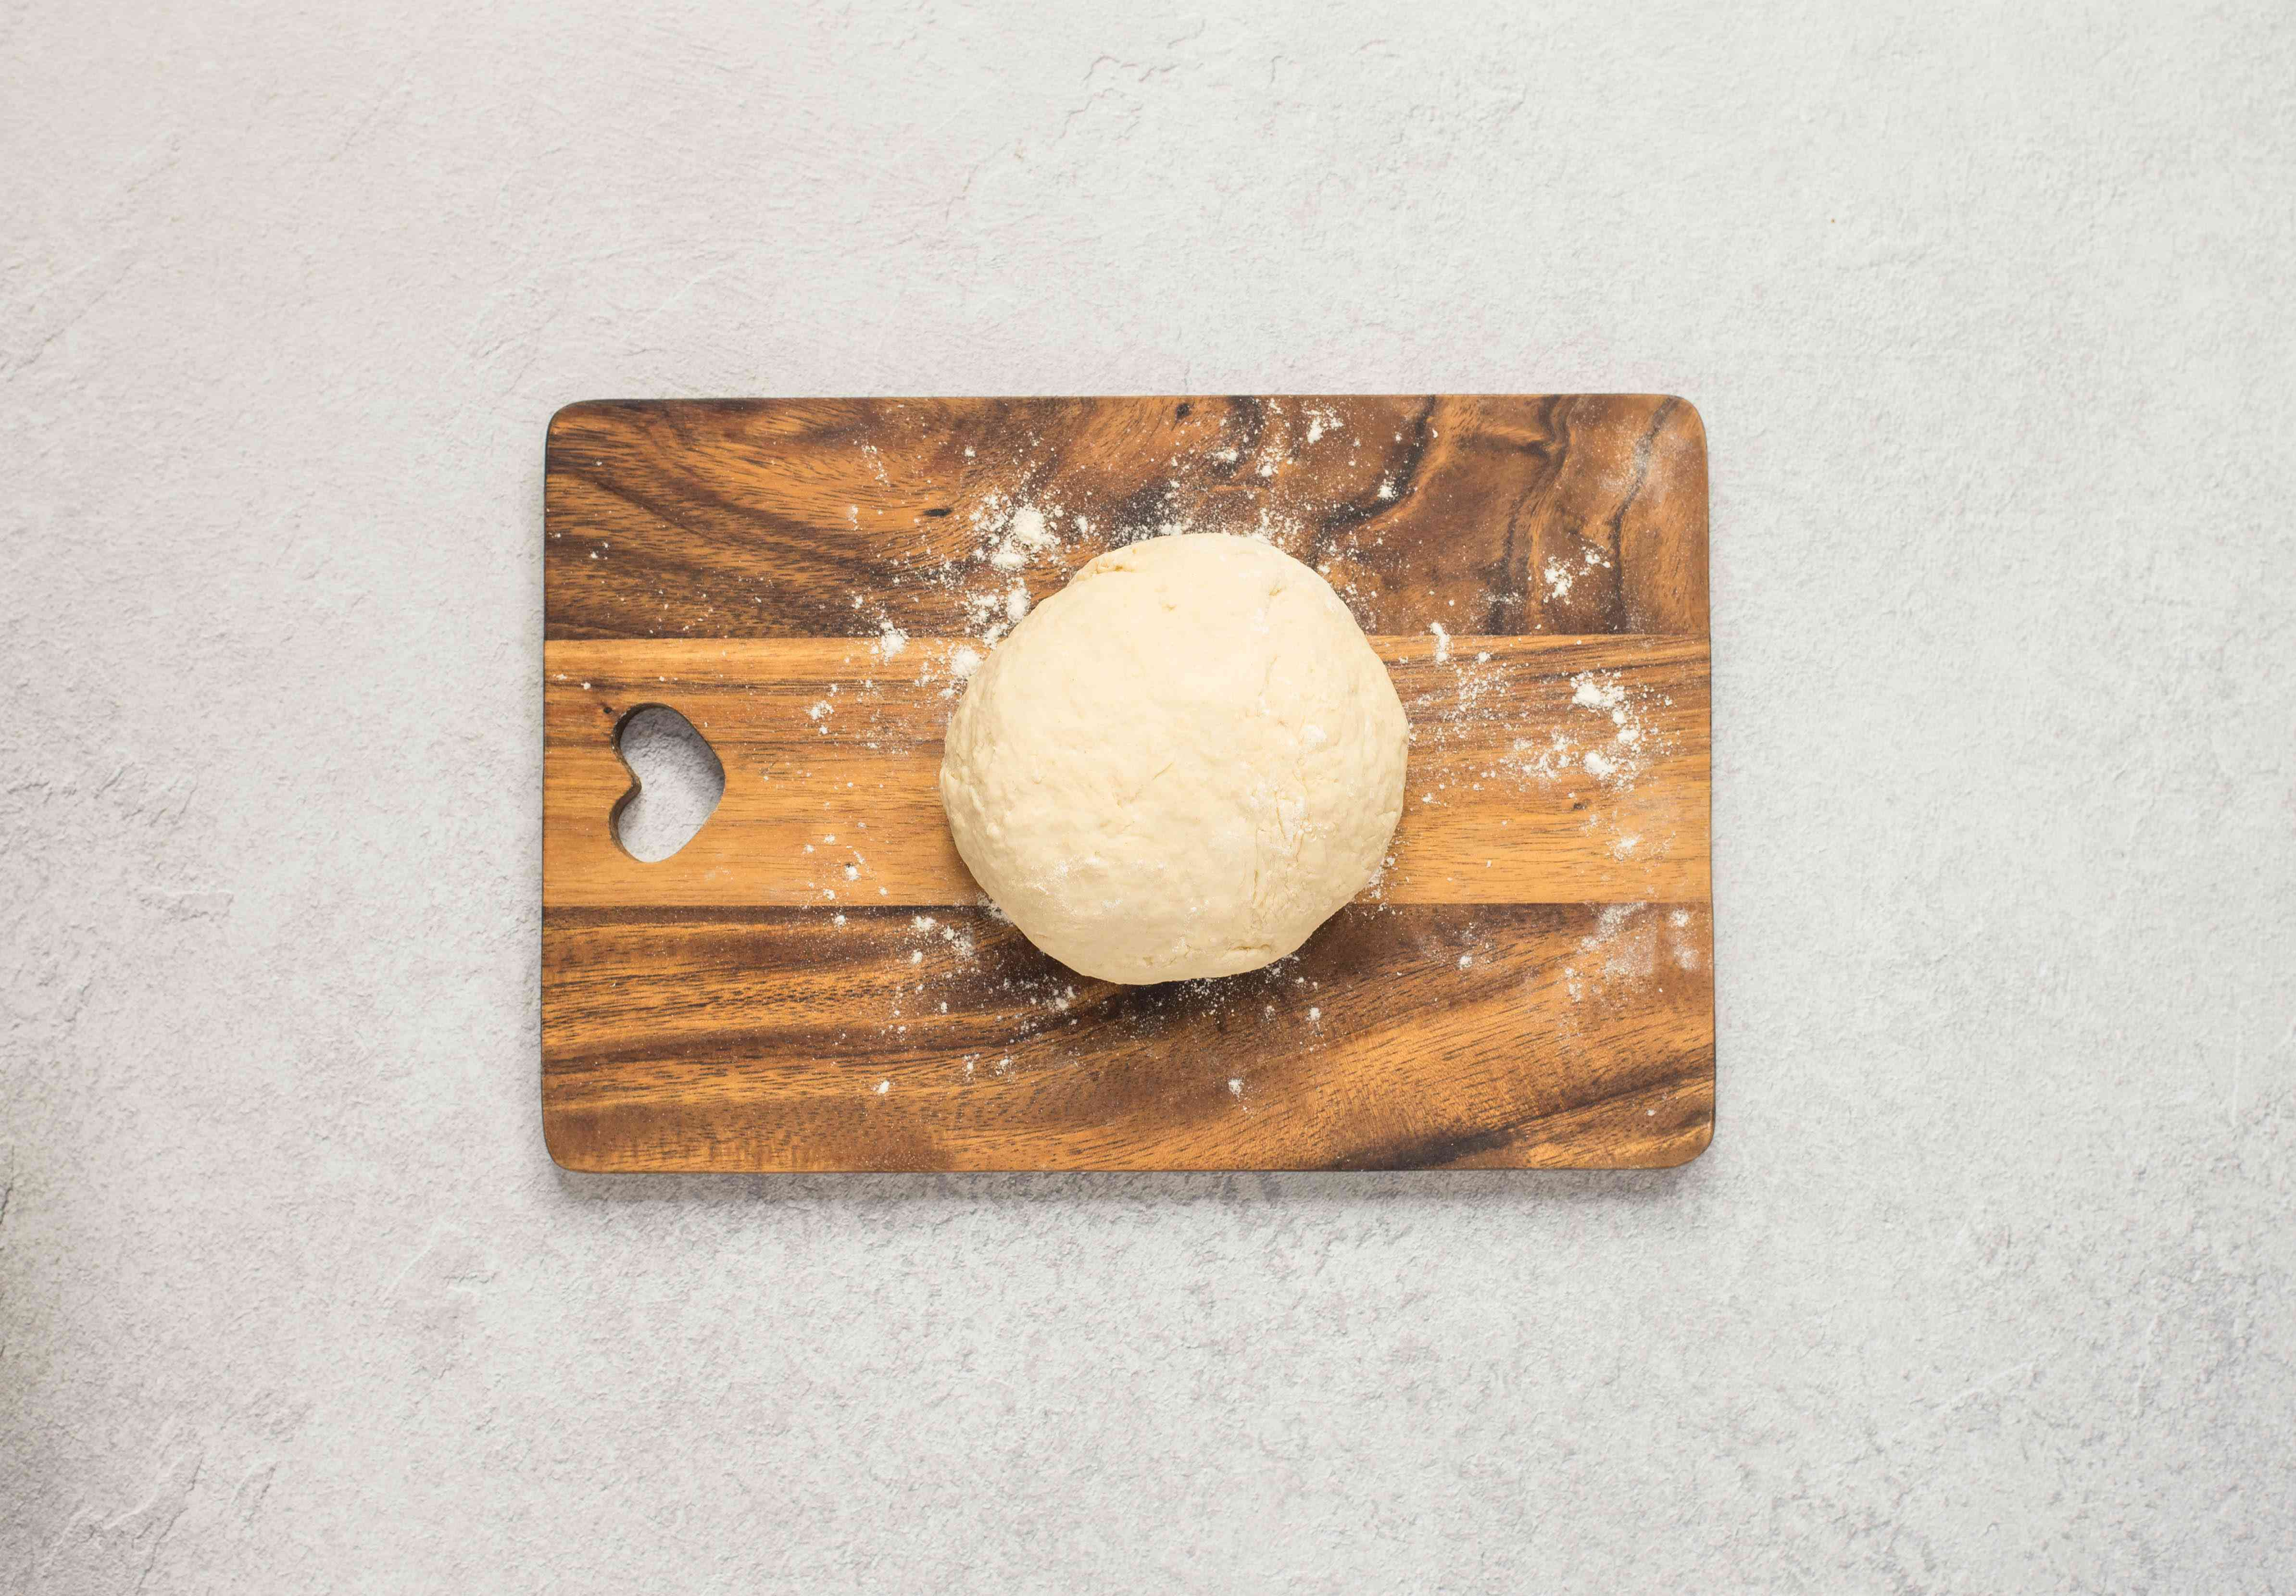 Dough that is smooth workable